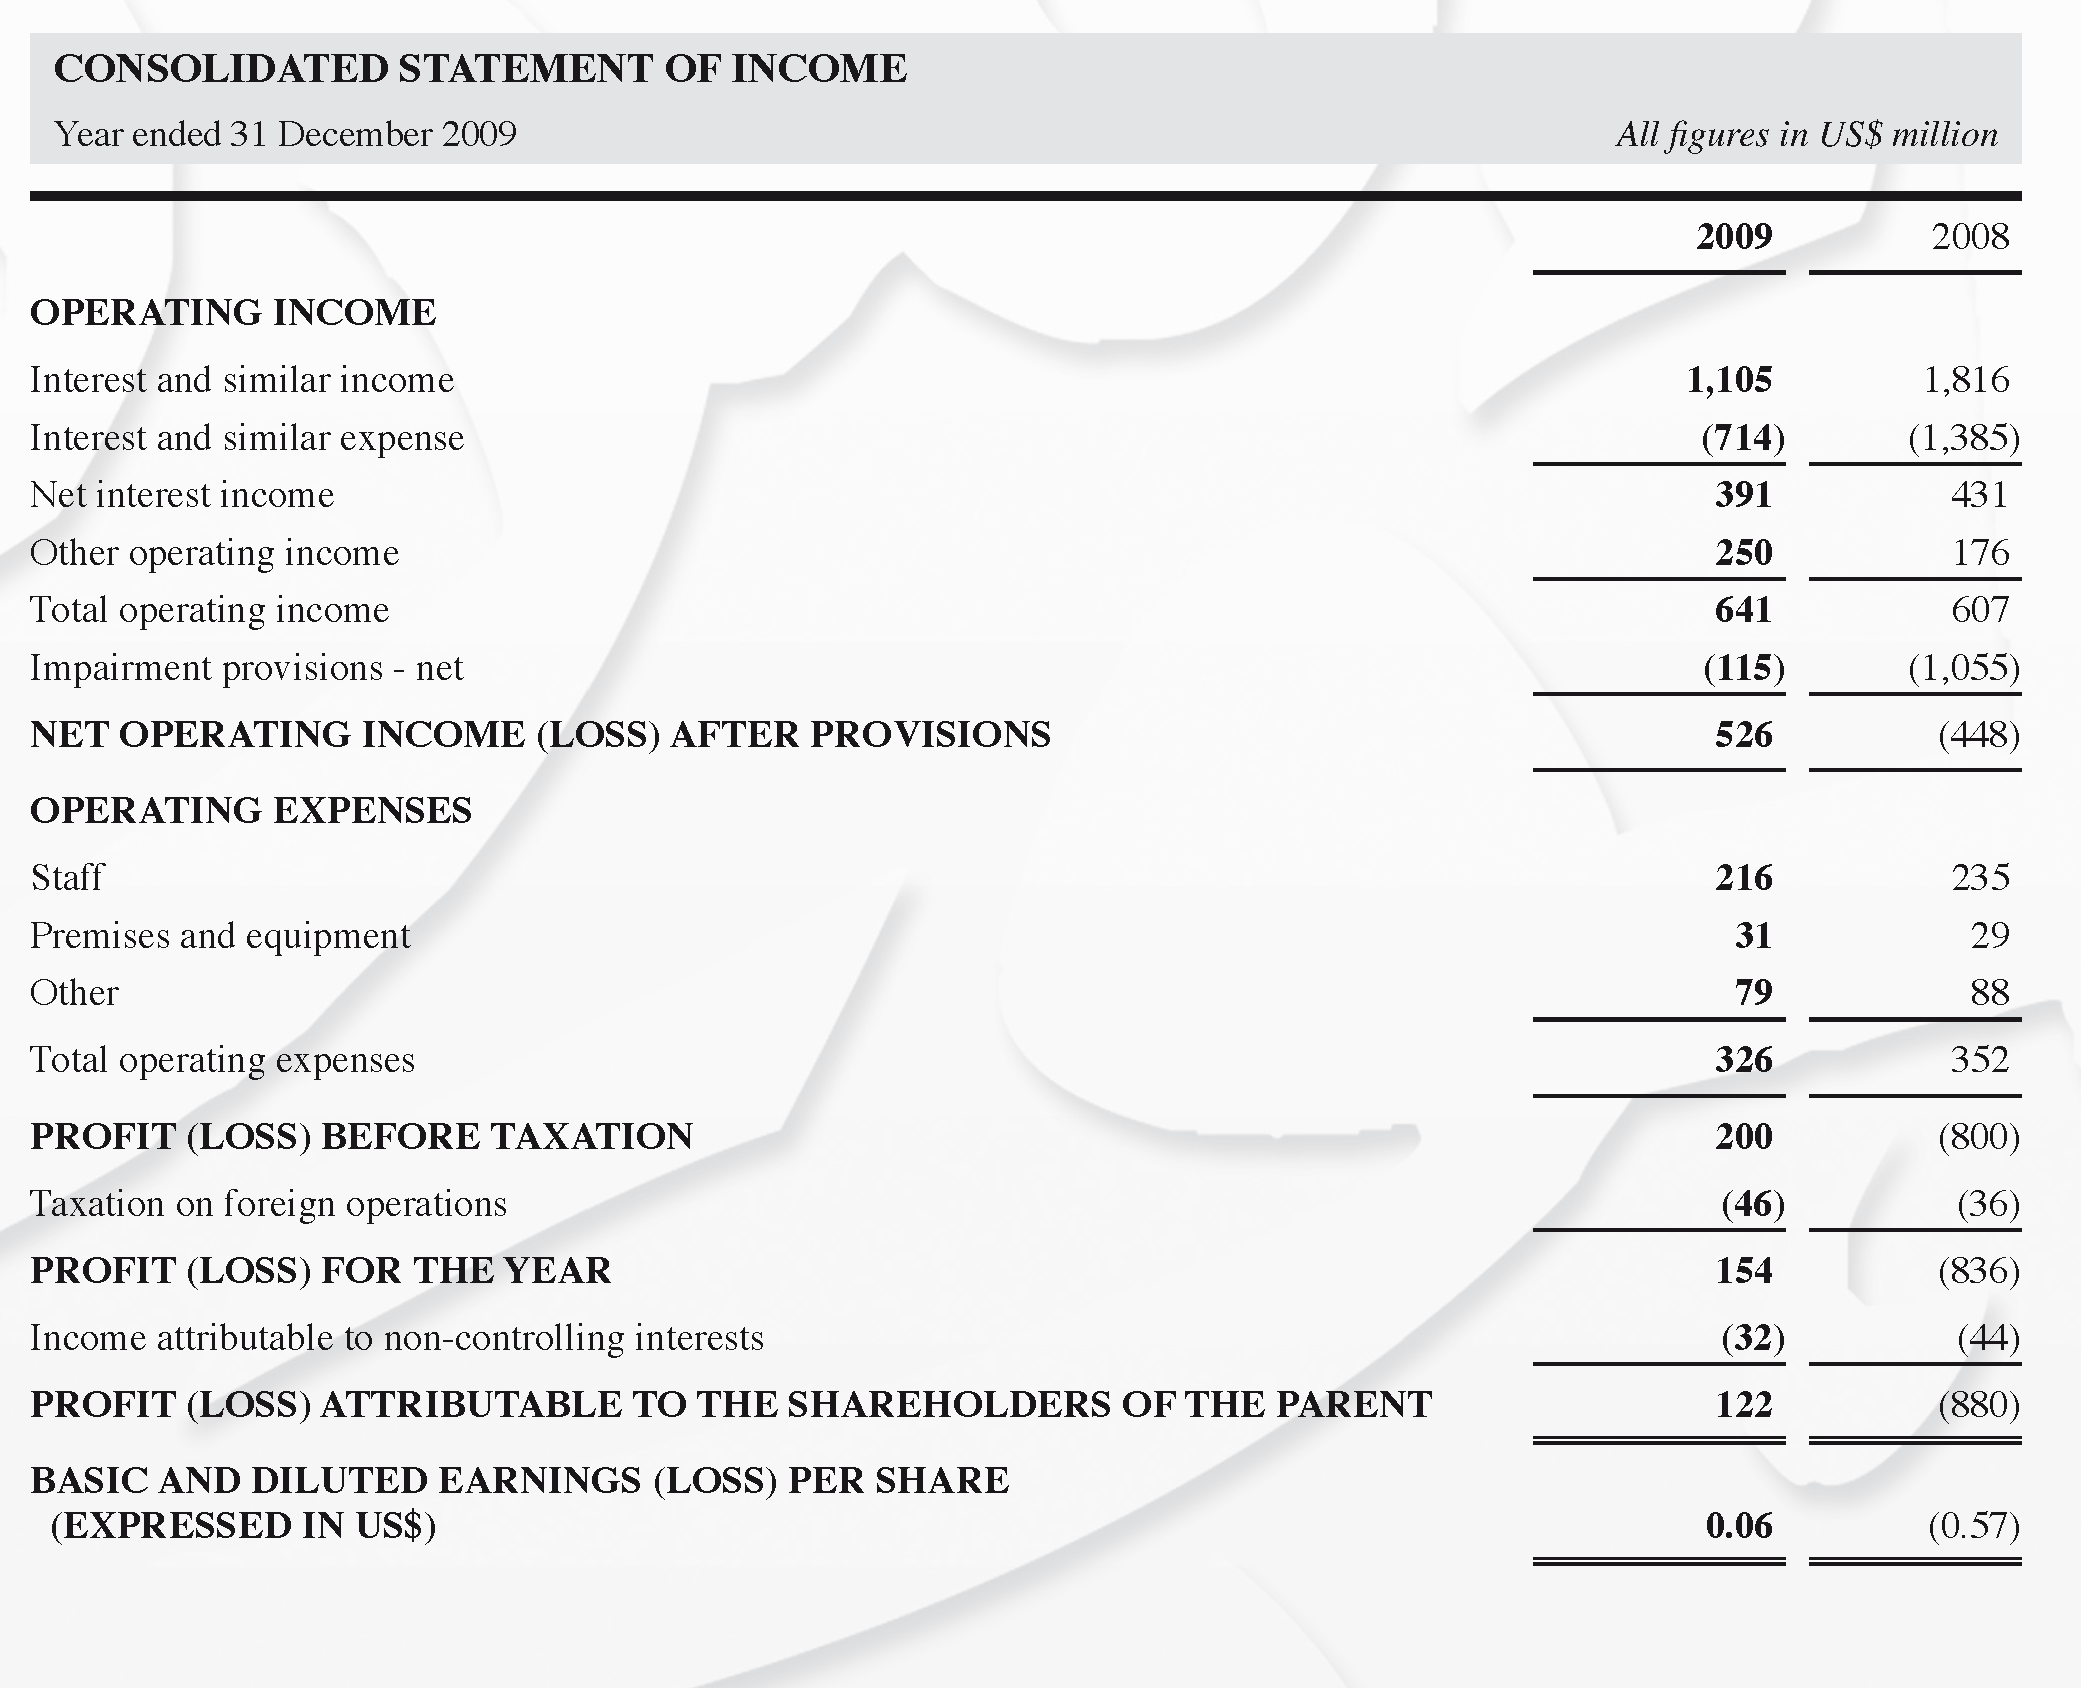 Interim Consolidated Statement of Income - Image